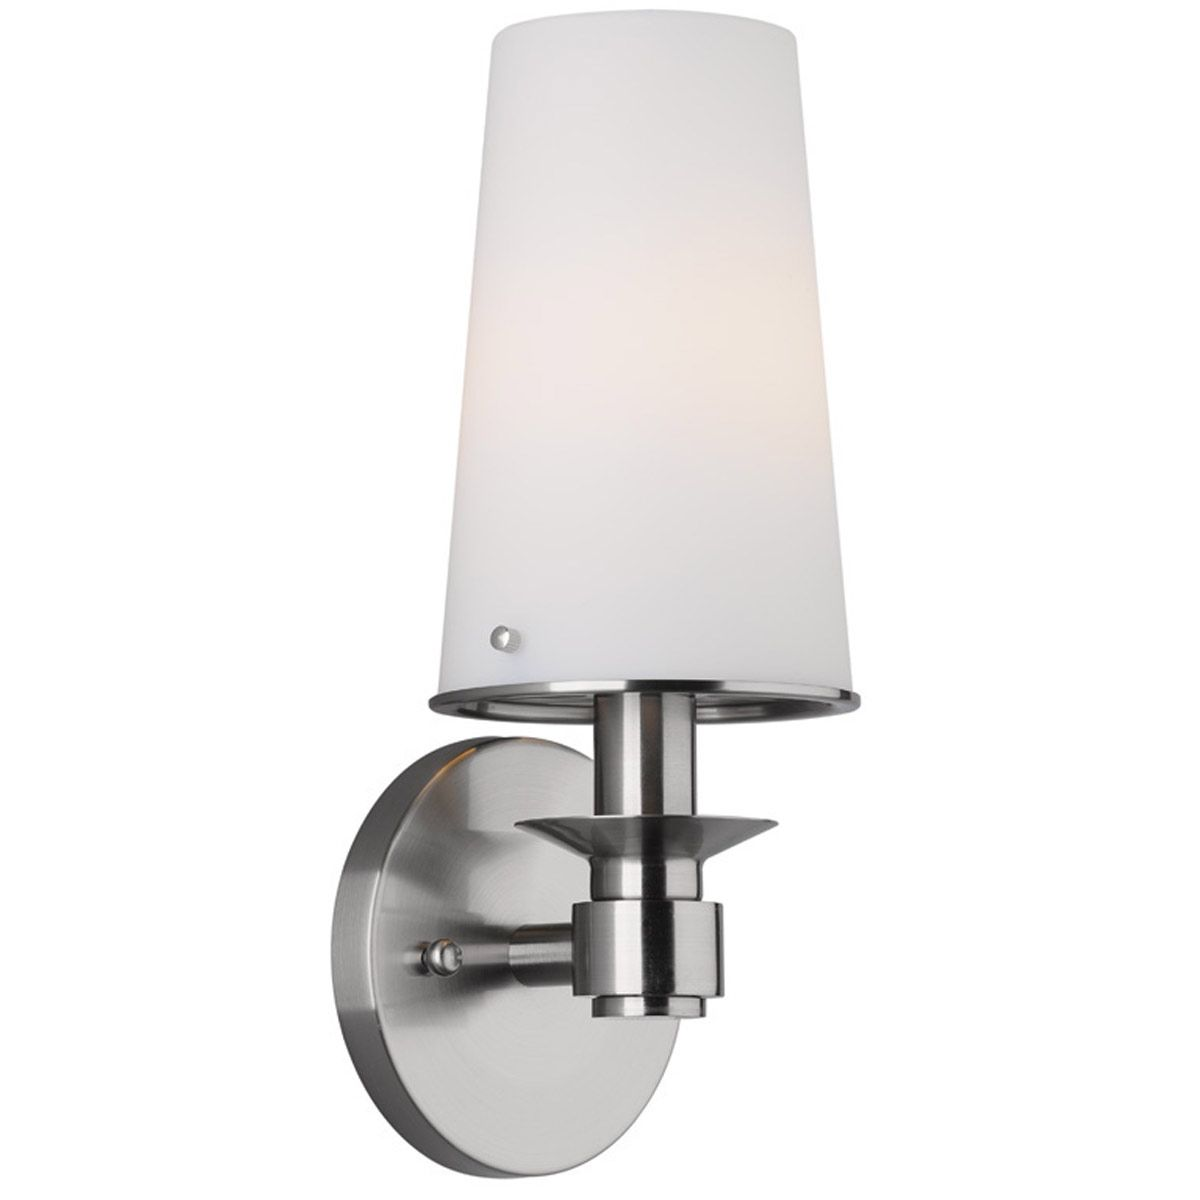 Torch Wall Sconce by Forecast | FM-f5427-36nv2 | Cheap ... on Discount Wall Sconces id=42495